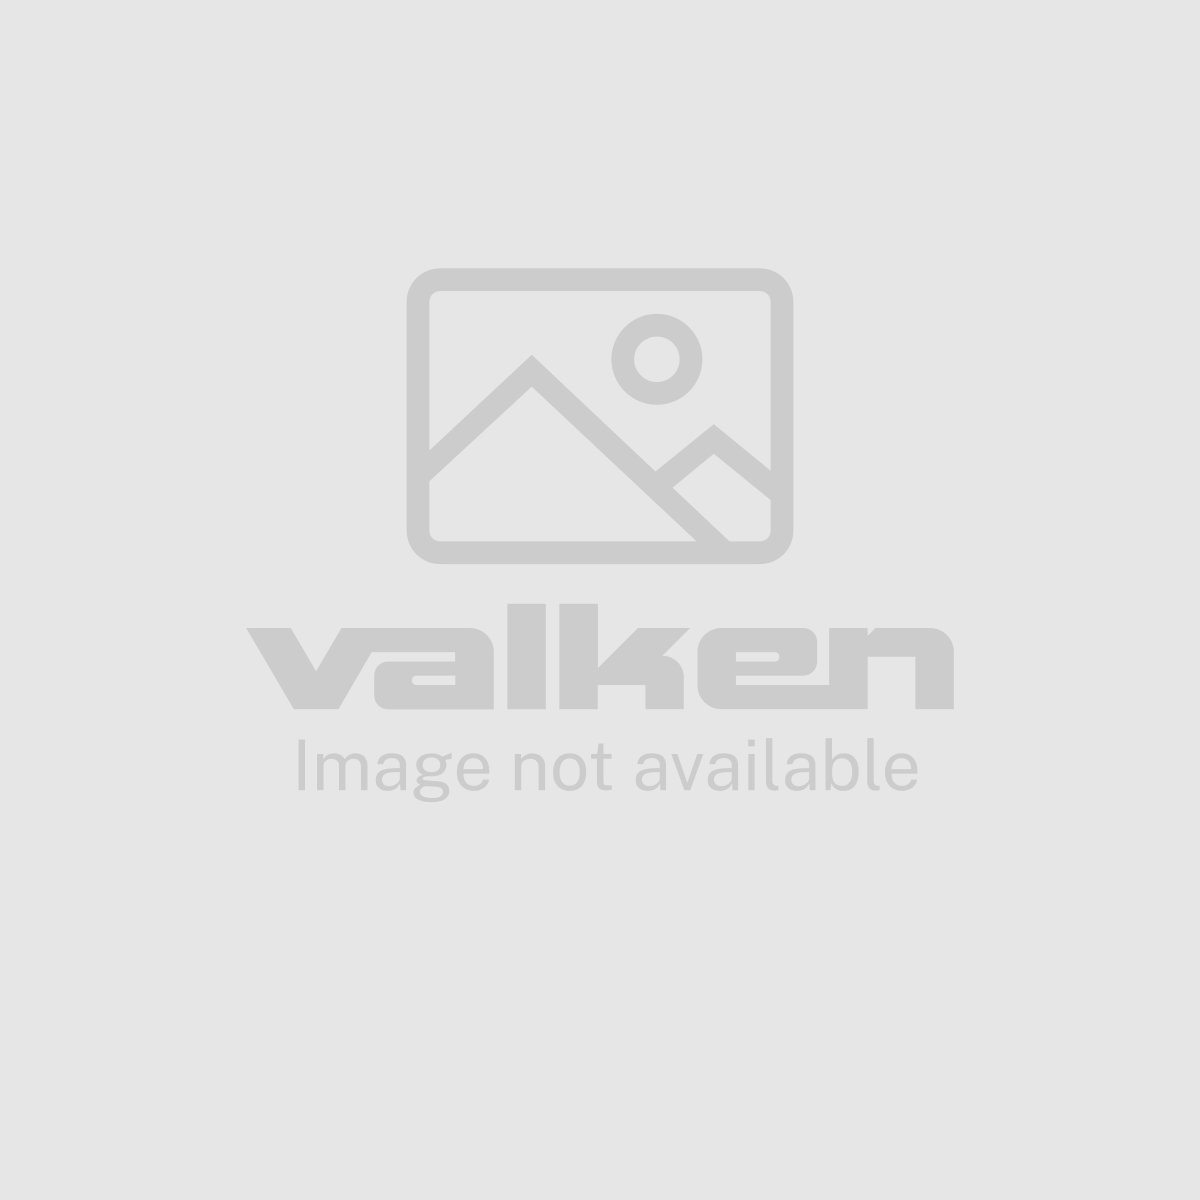 View larger image of Umarex 19rd GLOCK 19 GBB Airsoft Magazine (VFC)